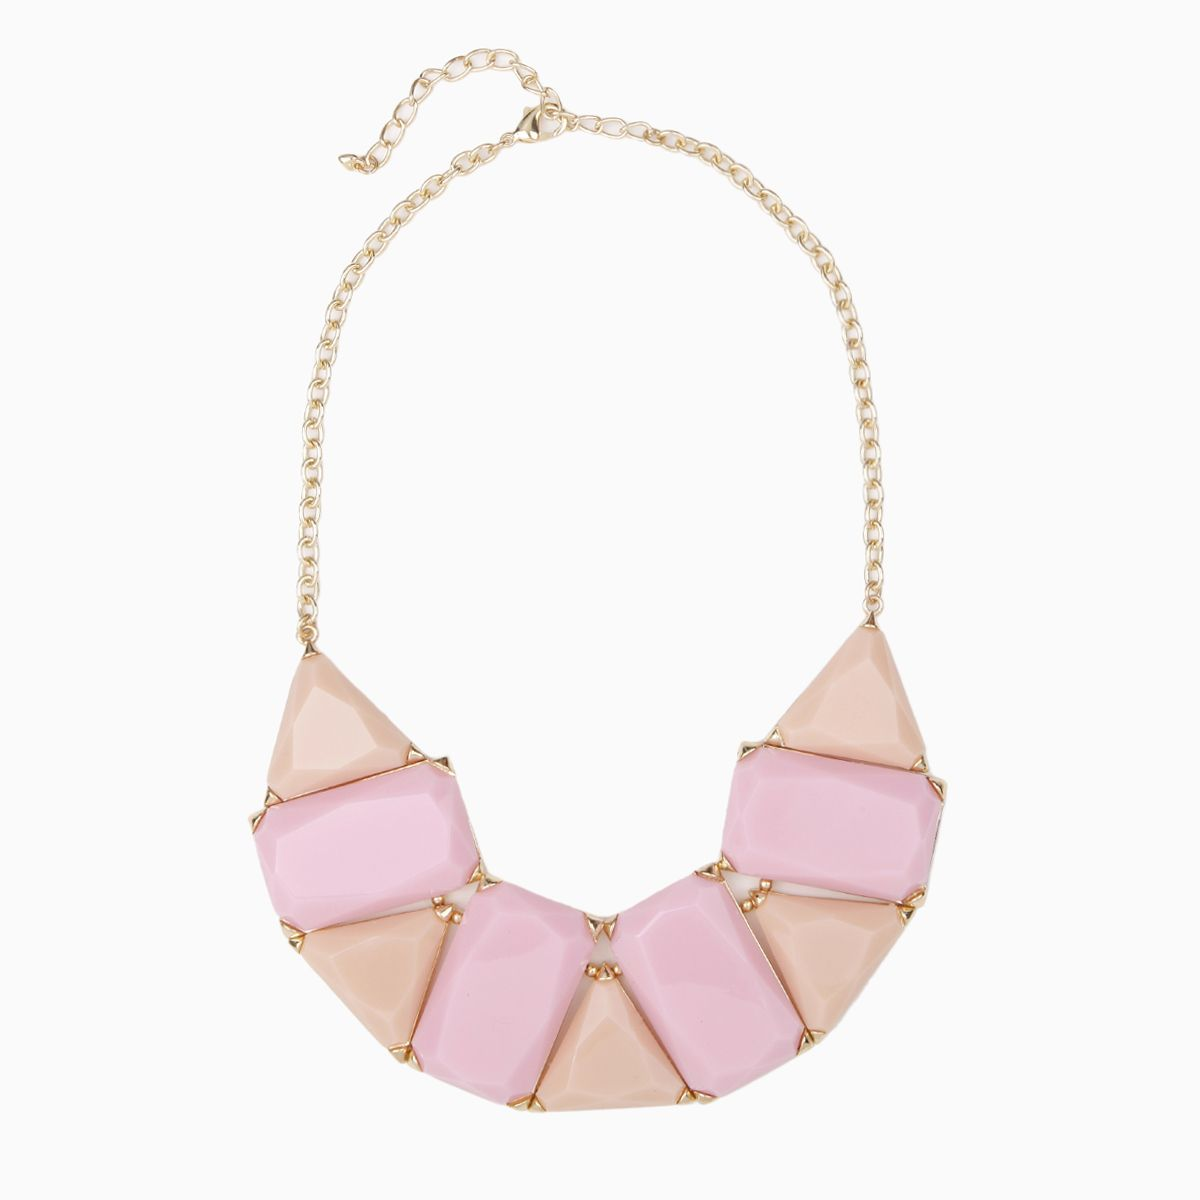 Candy Shaped Necklace